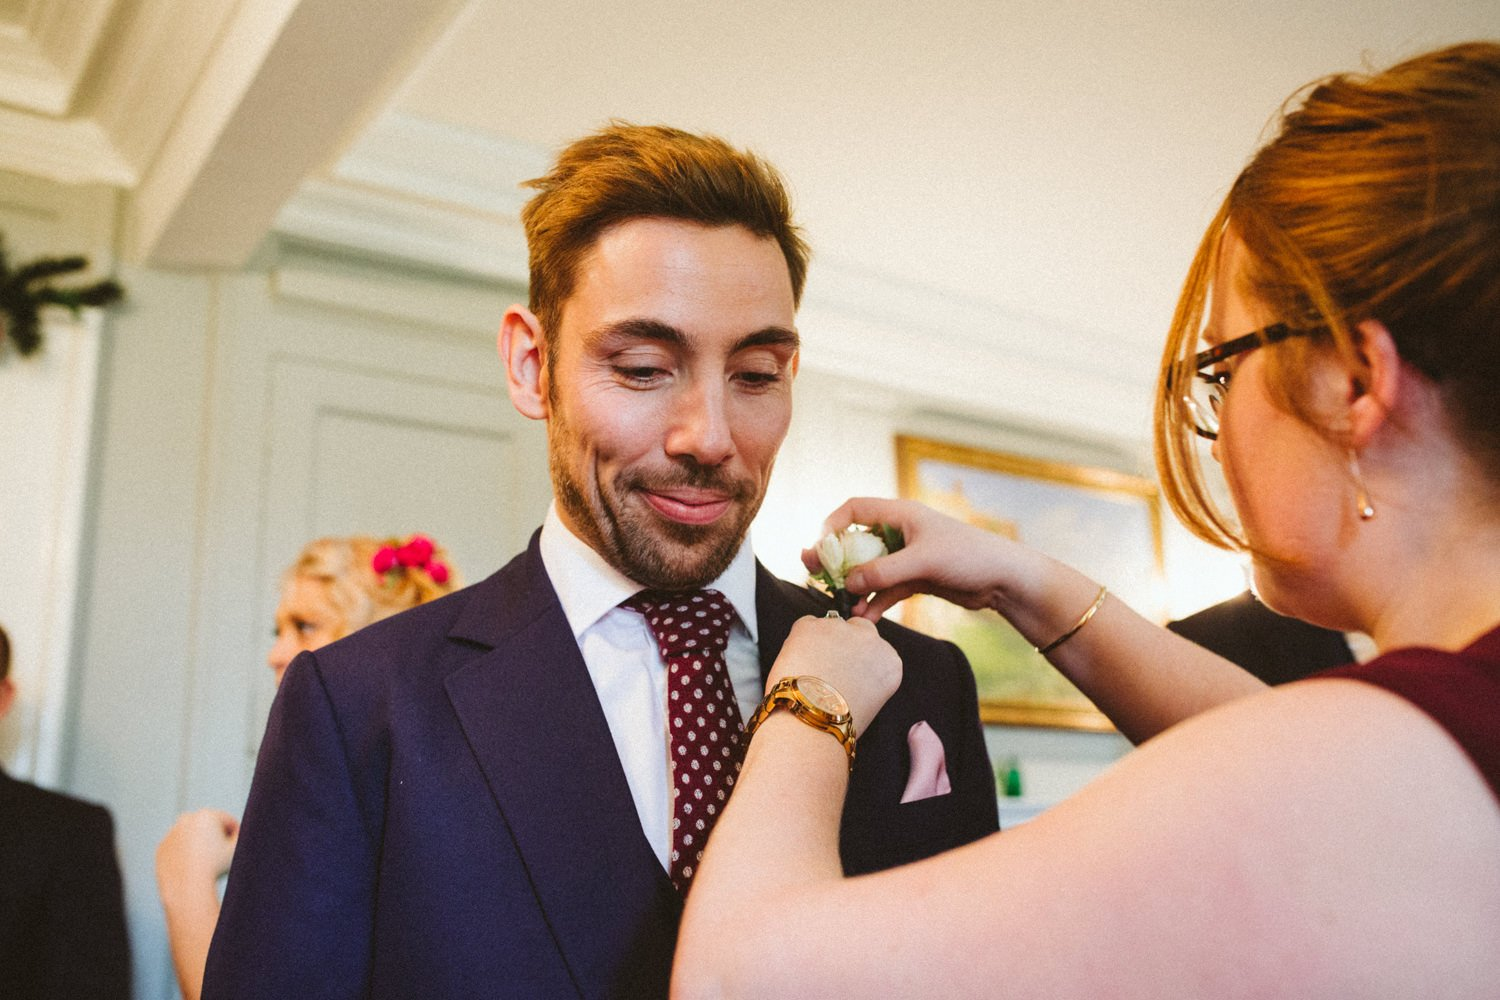 Yardsmen groom with buttonhole at Burgh House London